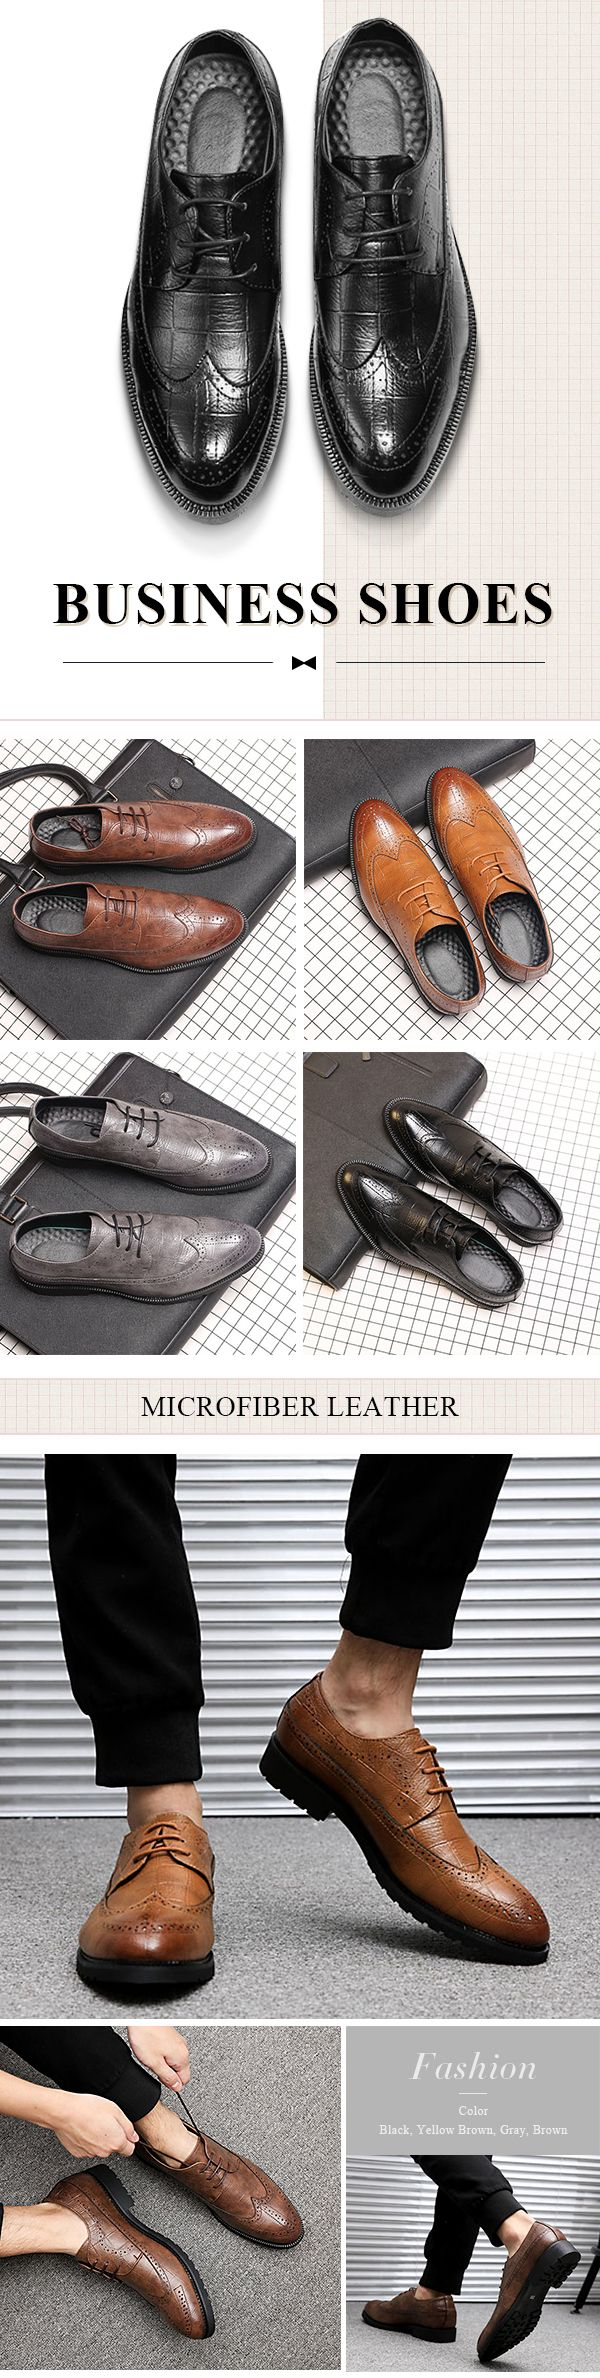 US$35.98 Men Large Size Microfiber Leather Pointed Toe Brogue Business Casual Shoes